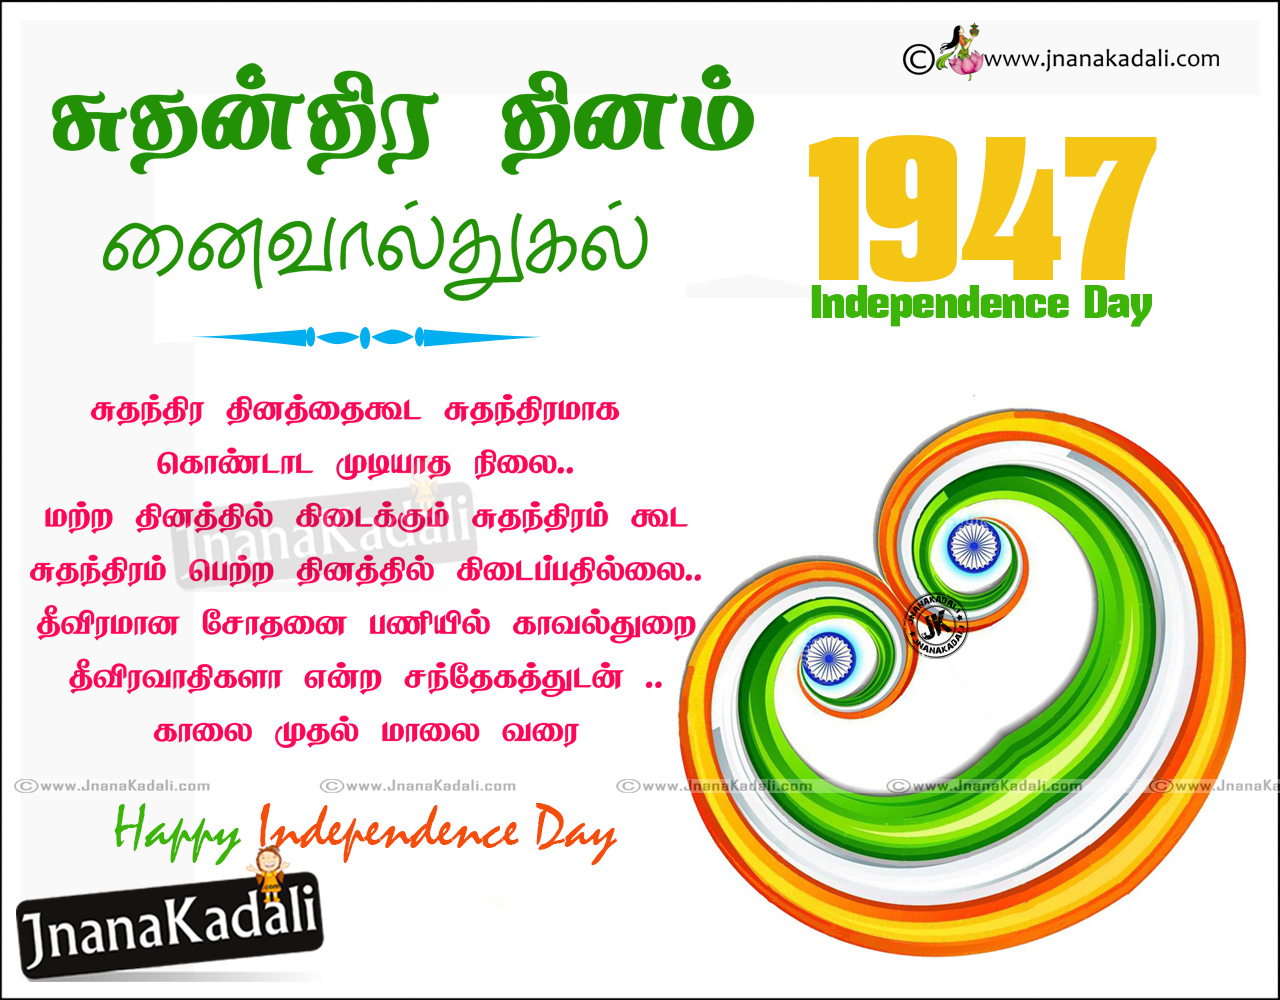 independence day essay in tamil Here is an independence day short essay in tamilyou can use this in dependence day essay in tamil language for your school assignments we have made sure that the independence day essay in tamil font is available here for the student's help.